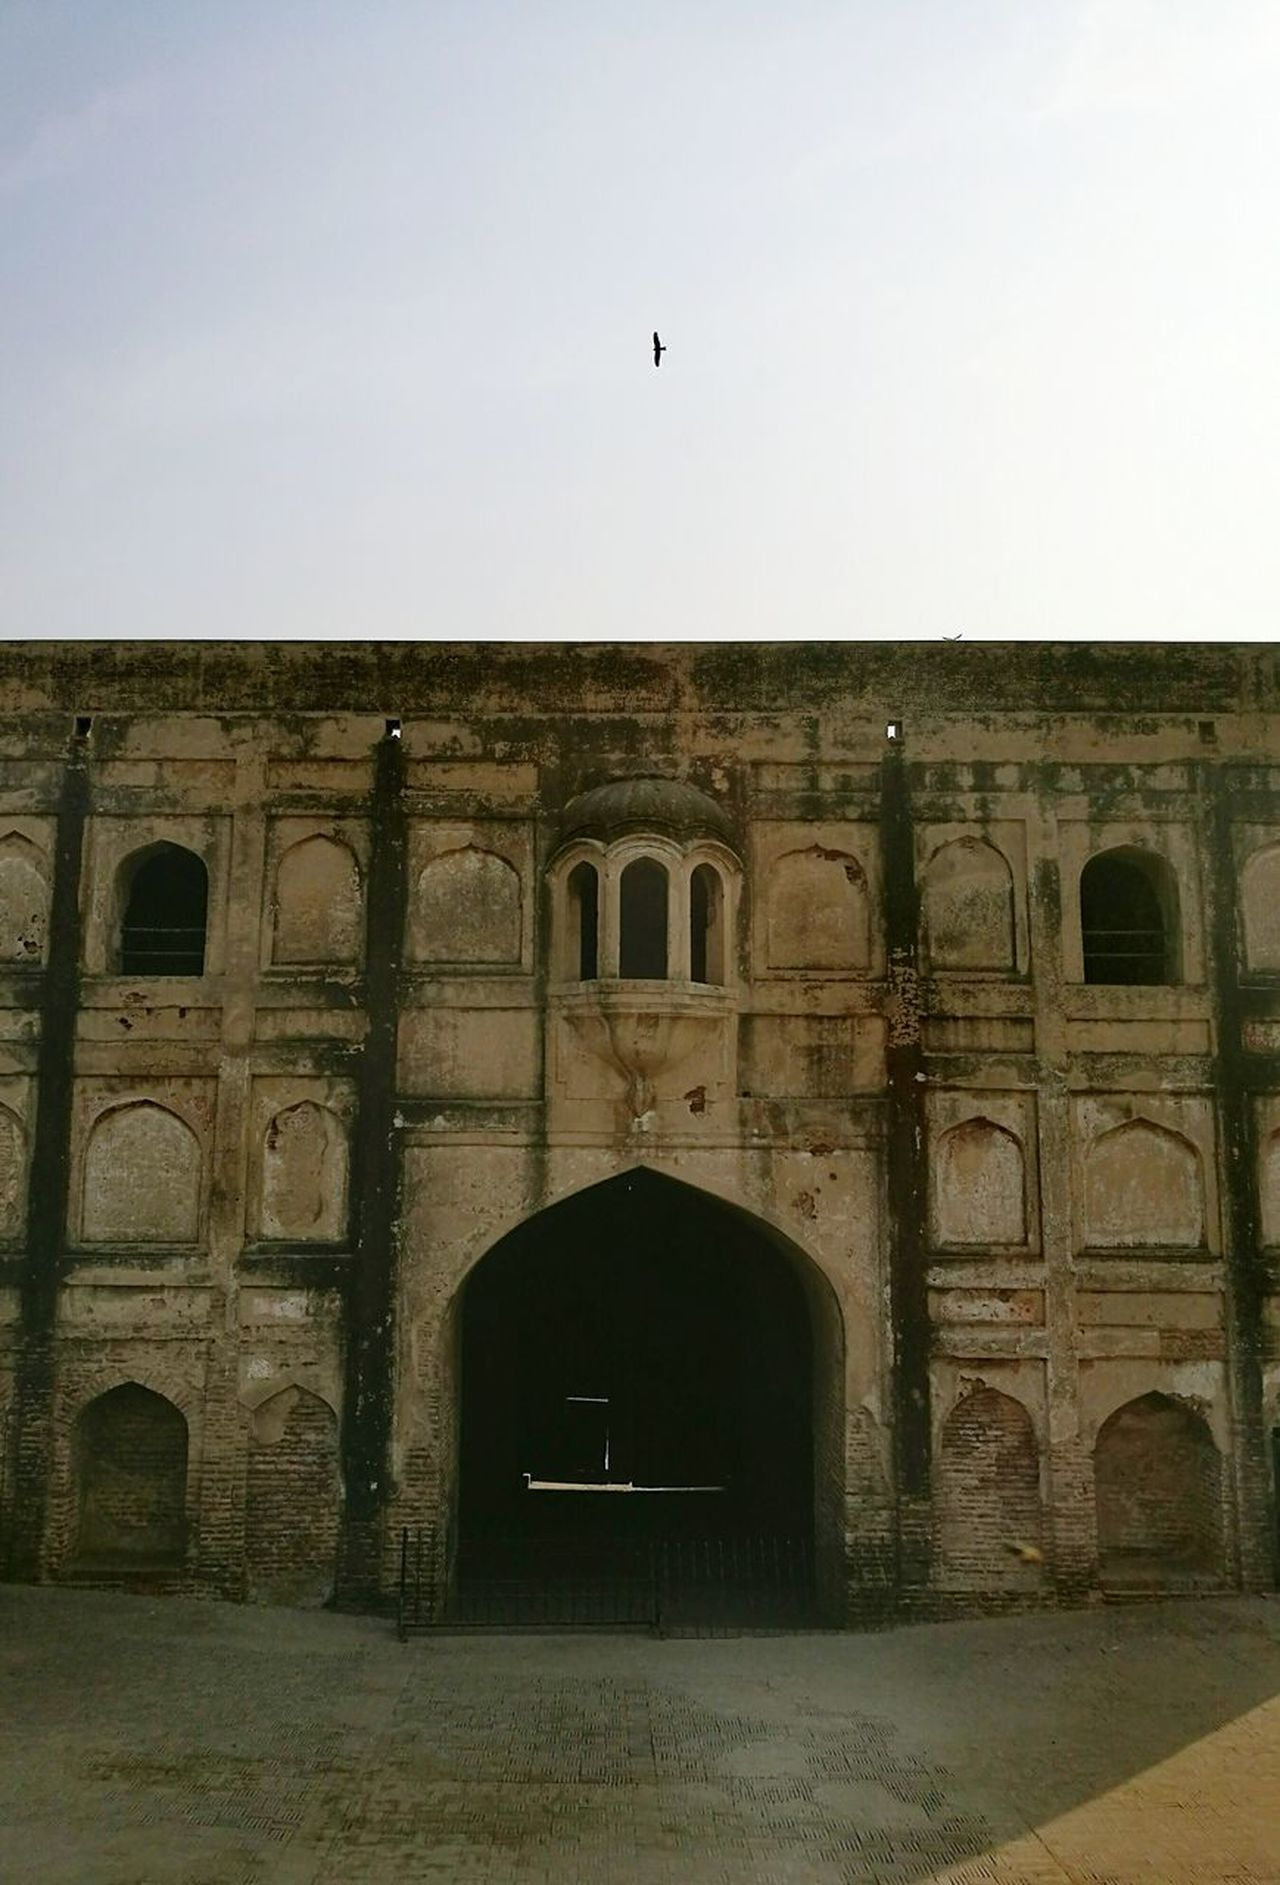 Built Structure Bird Architecture Arch First Eyeem Photo Sky Finding New Frontiers Lahore Fort Pakistan History Through The Lens